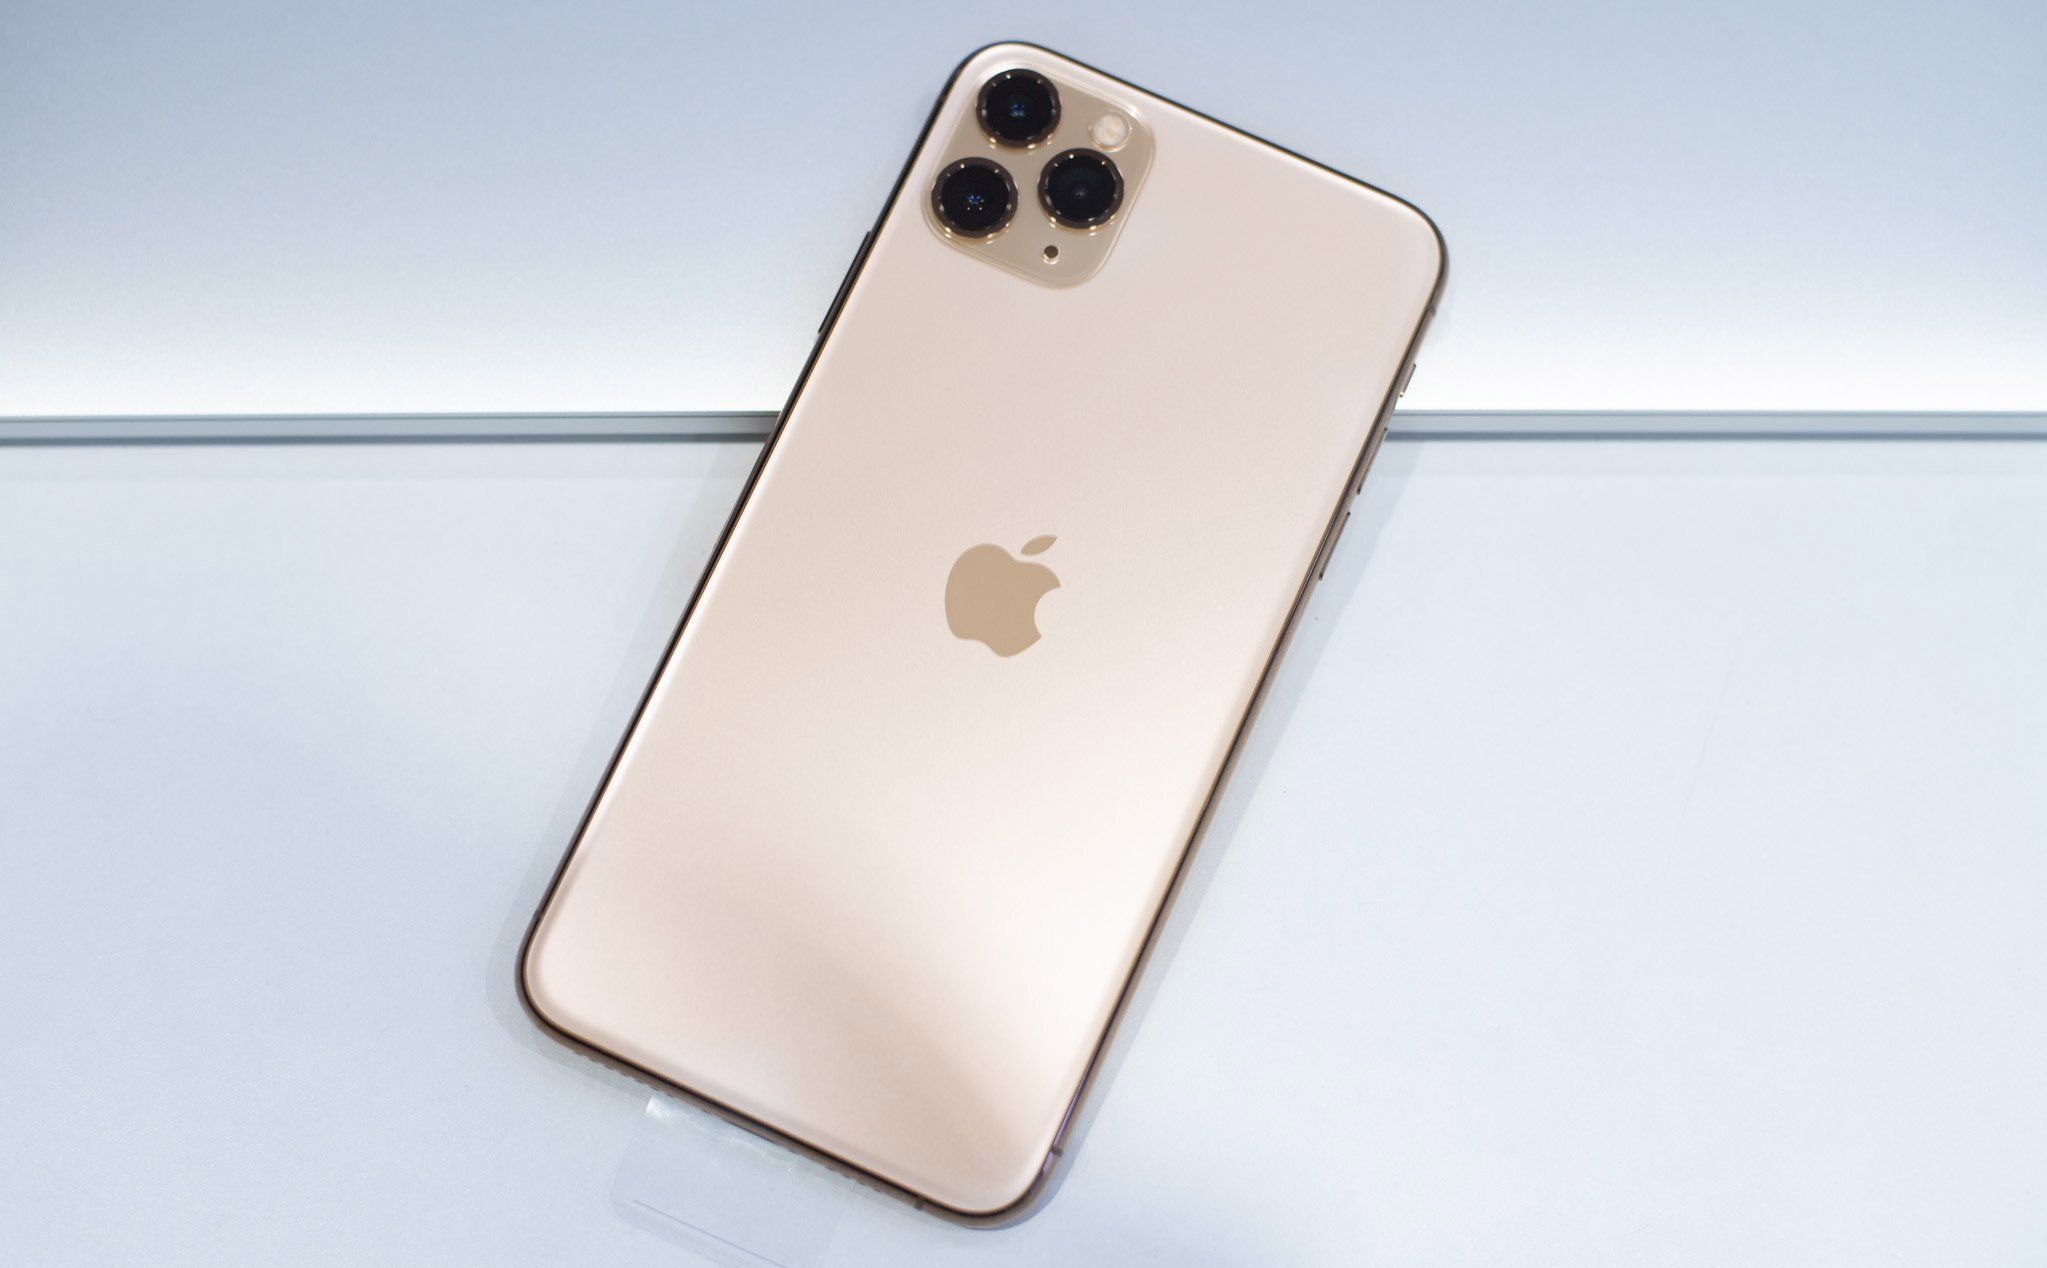 Apple copyrighted the Apple logo to glow on the iPhone, which can replace the notification light